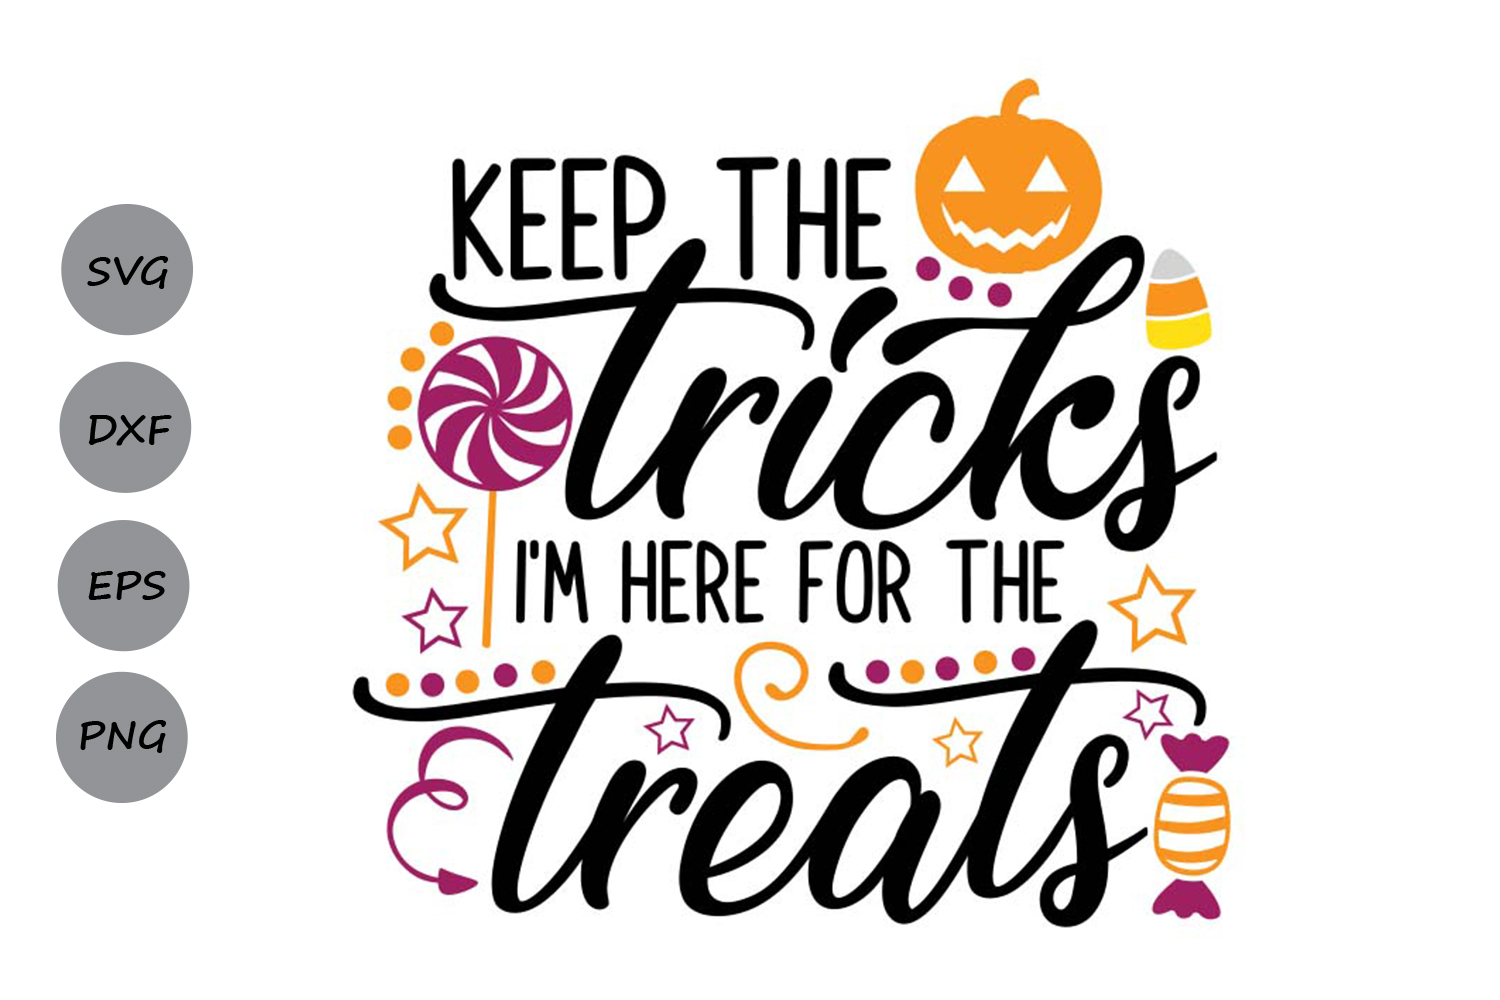 Download Free Keep The Tricks I M Here For Treats Graphic By Cosmosfineart for Cricut Explore, Silhouette and other cutting machines.